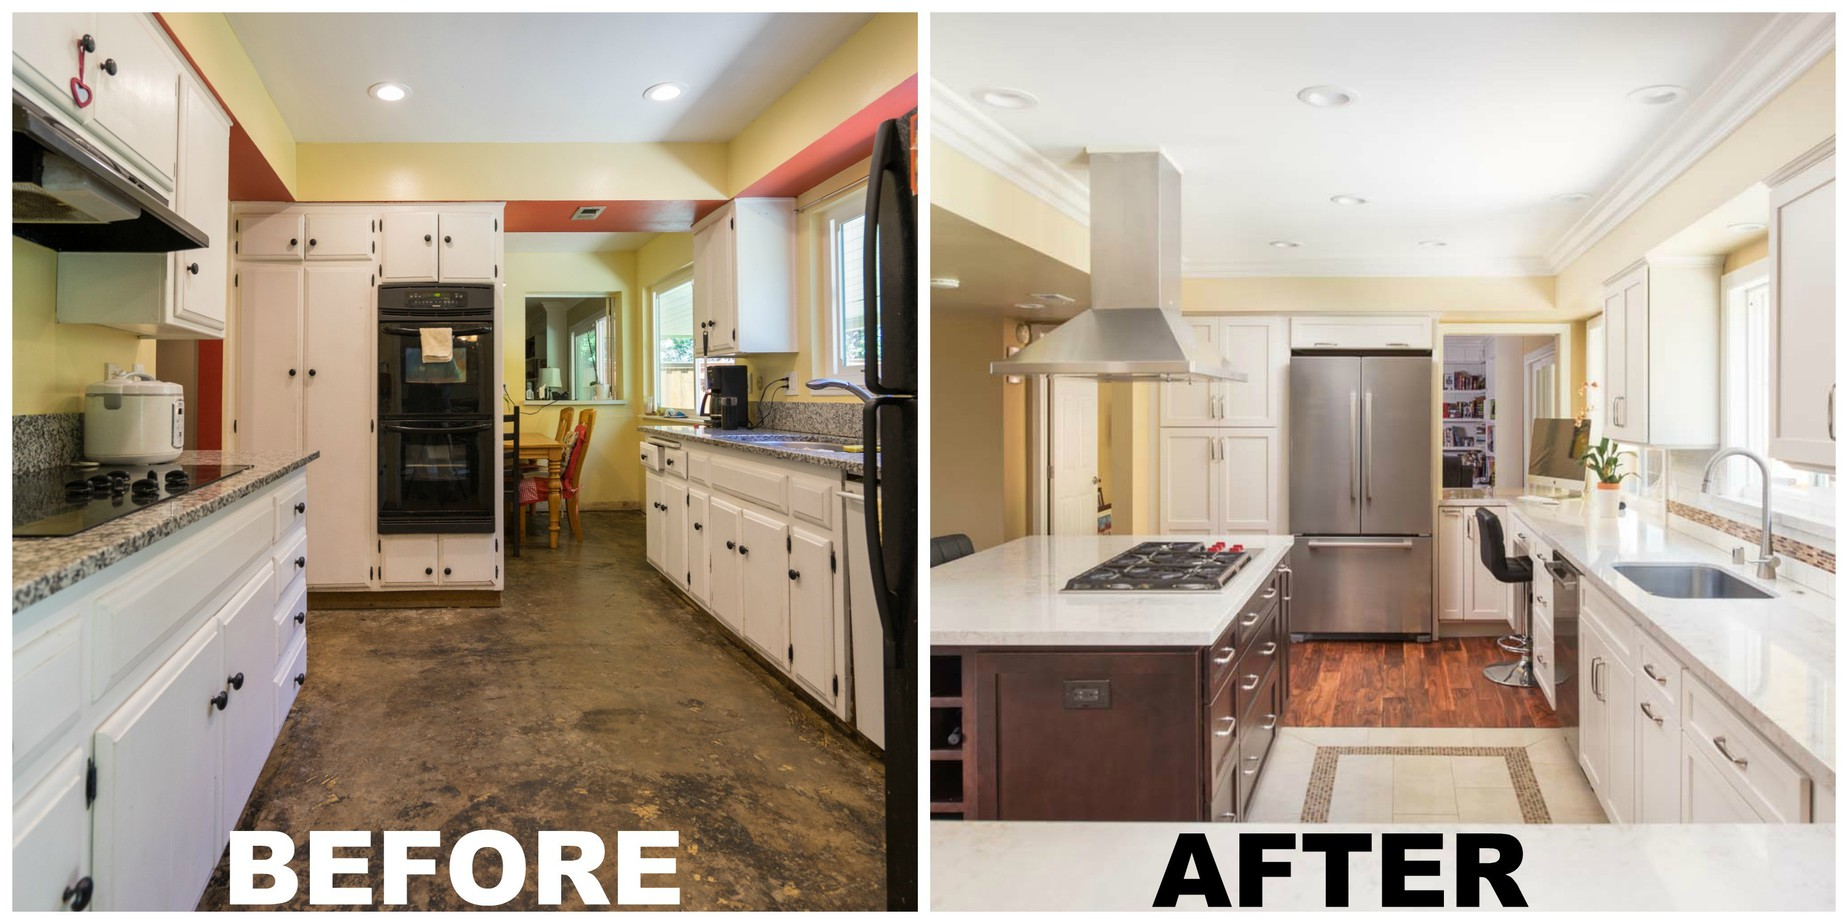 kitchen remodel before and after image changing to an open concept kitchen